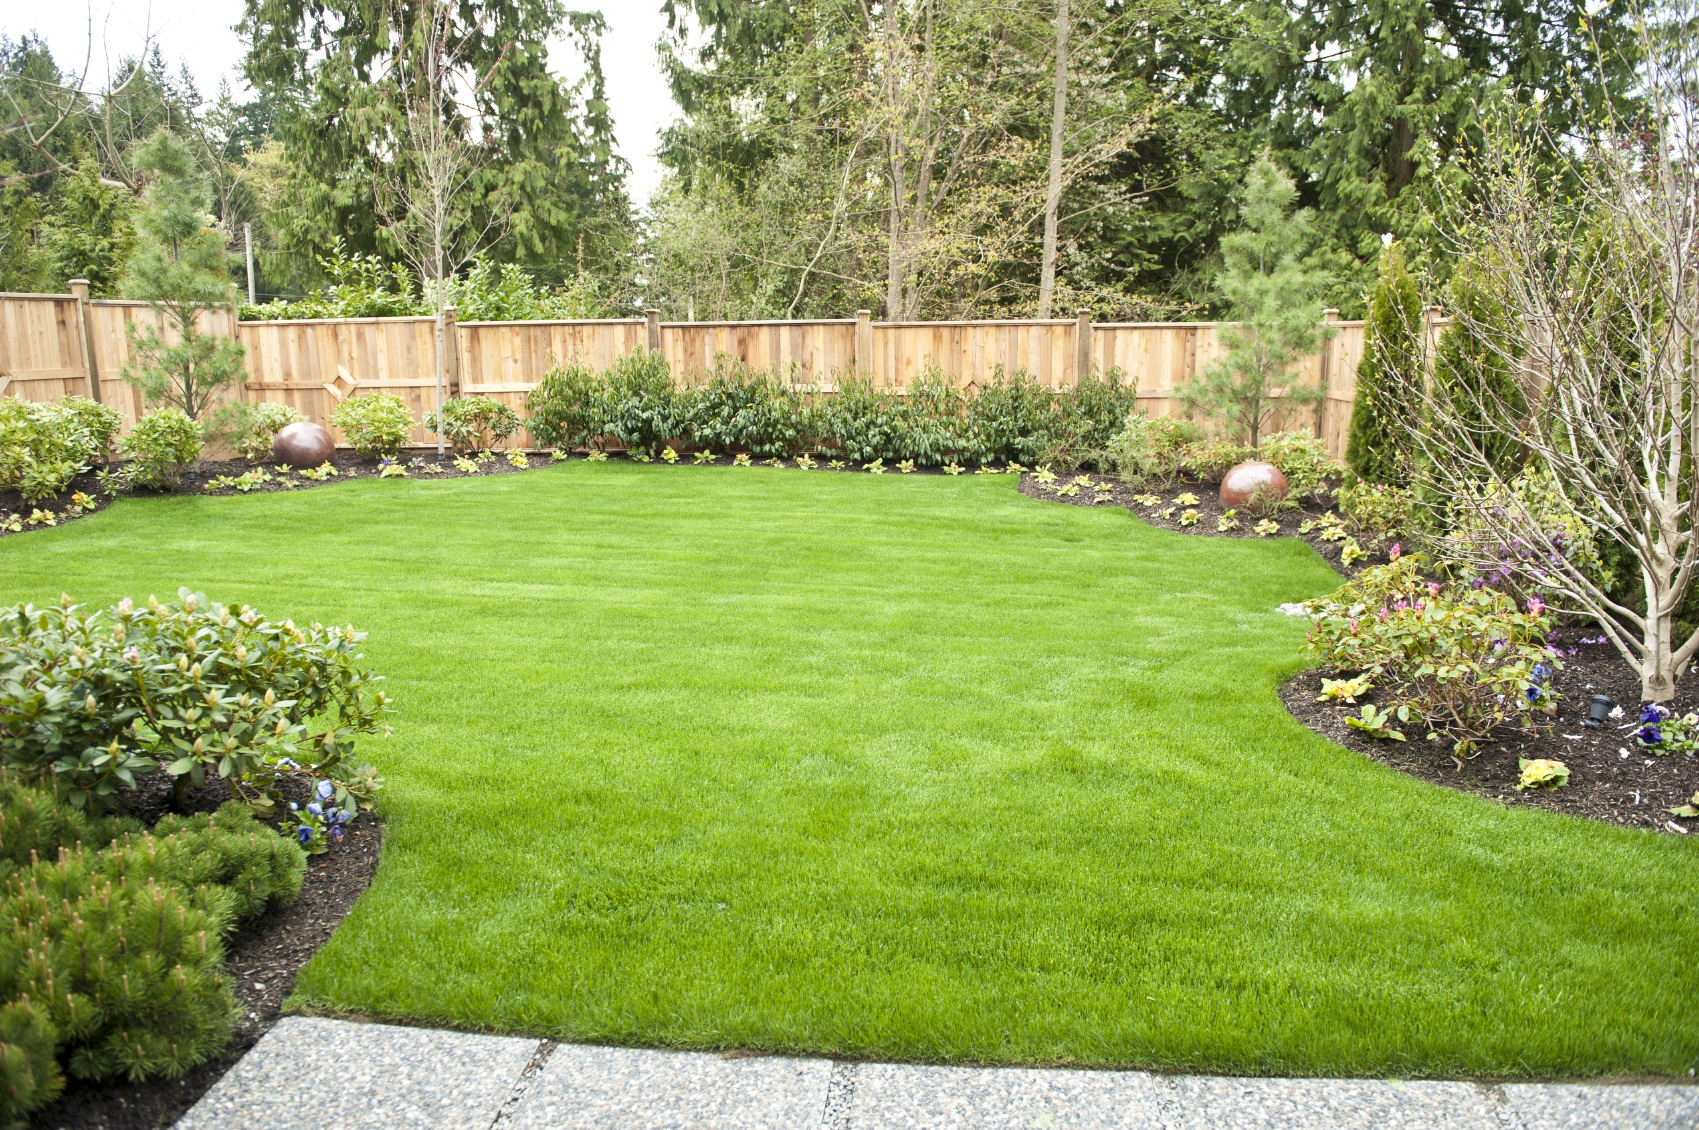 Backyard Backyard Landscape Garden How Do I Landscape My Backyard throughout Backyard Landscape Pics